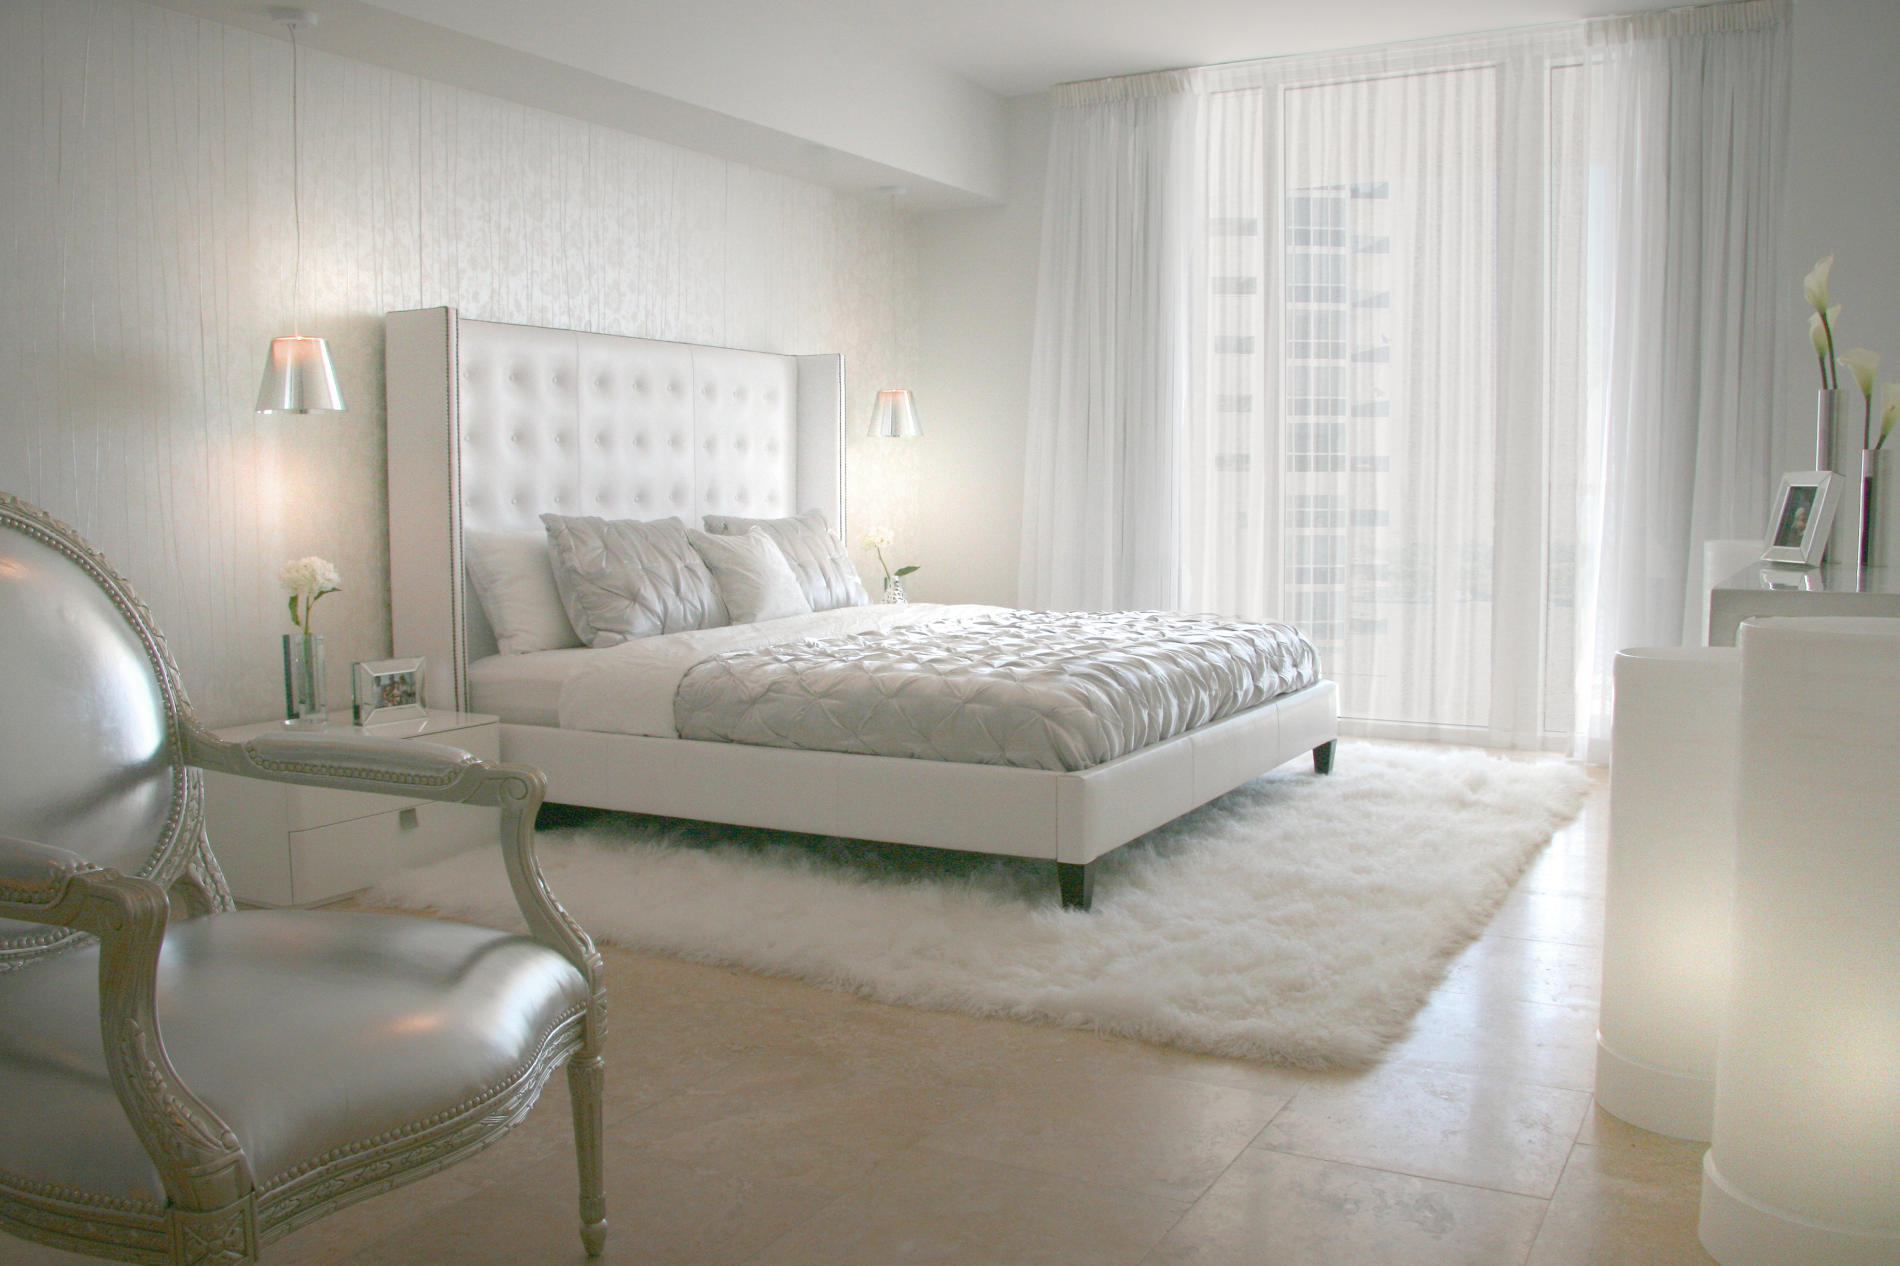 Bedroom Decorating Ideas: Your Bedroom Air Conditioning Can Make Or Break Your Decor